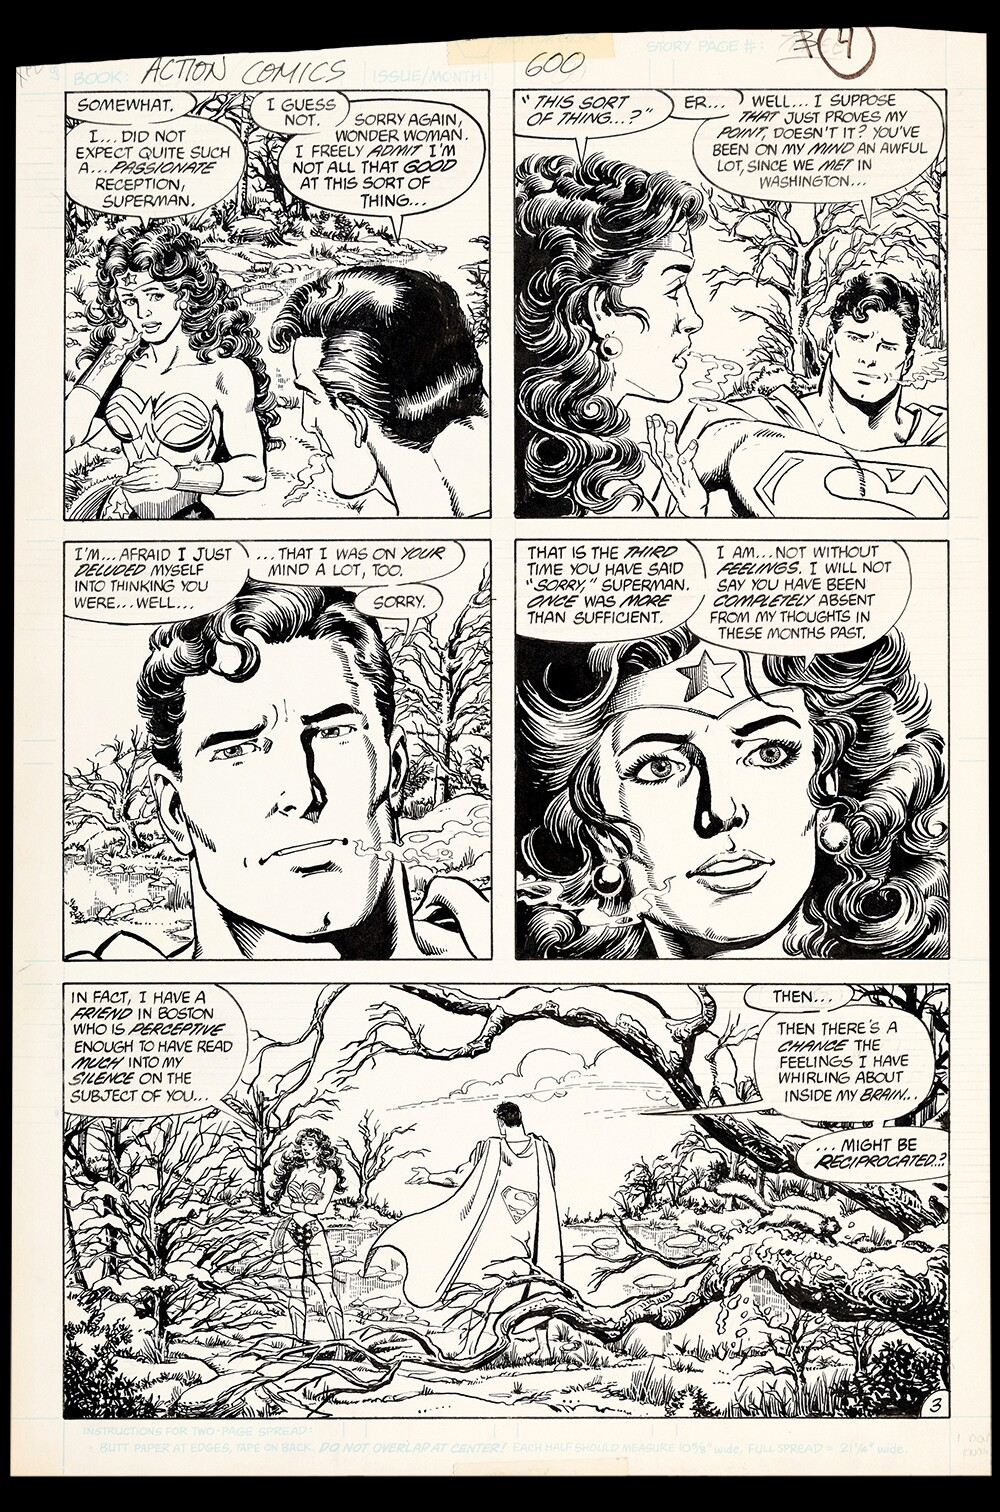 Action Comics #600 Art by John Byrne and George Perez